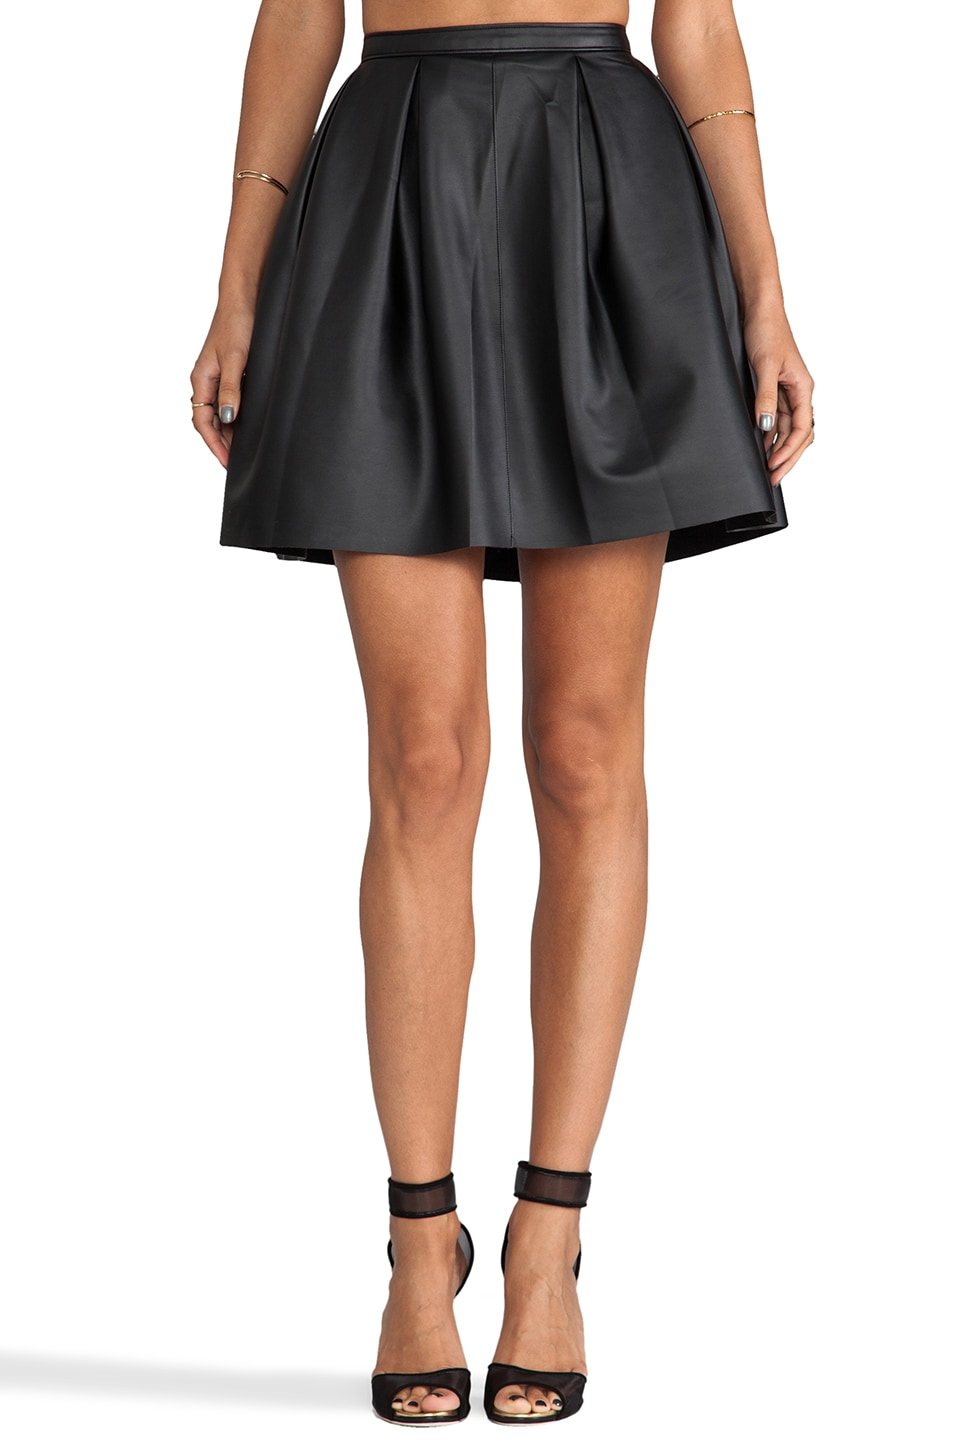 Paper Crown by Lauren Conrad Sutton Skirt in Black